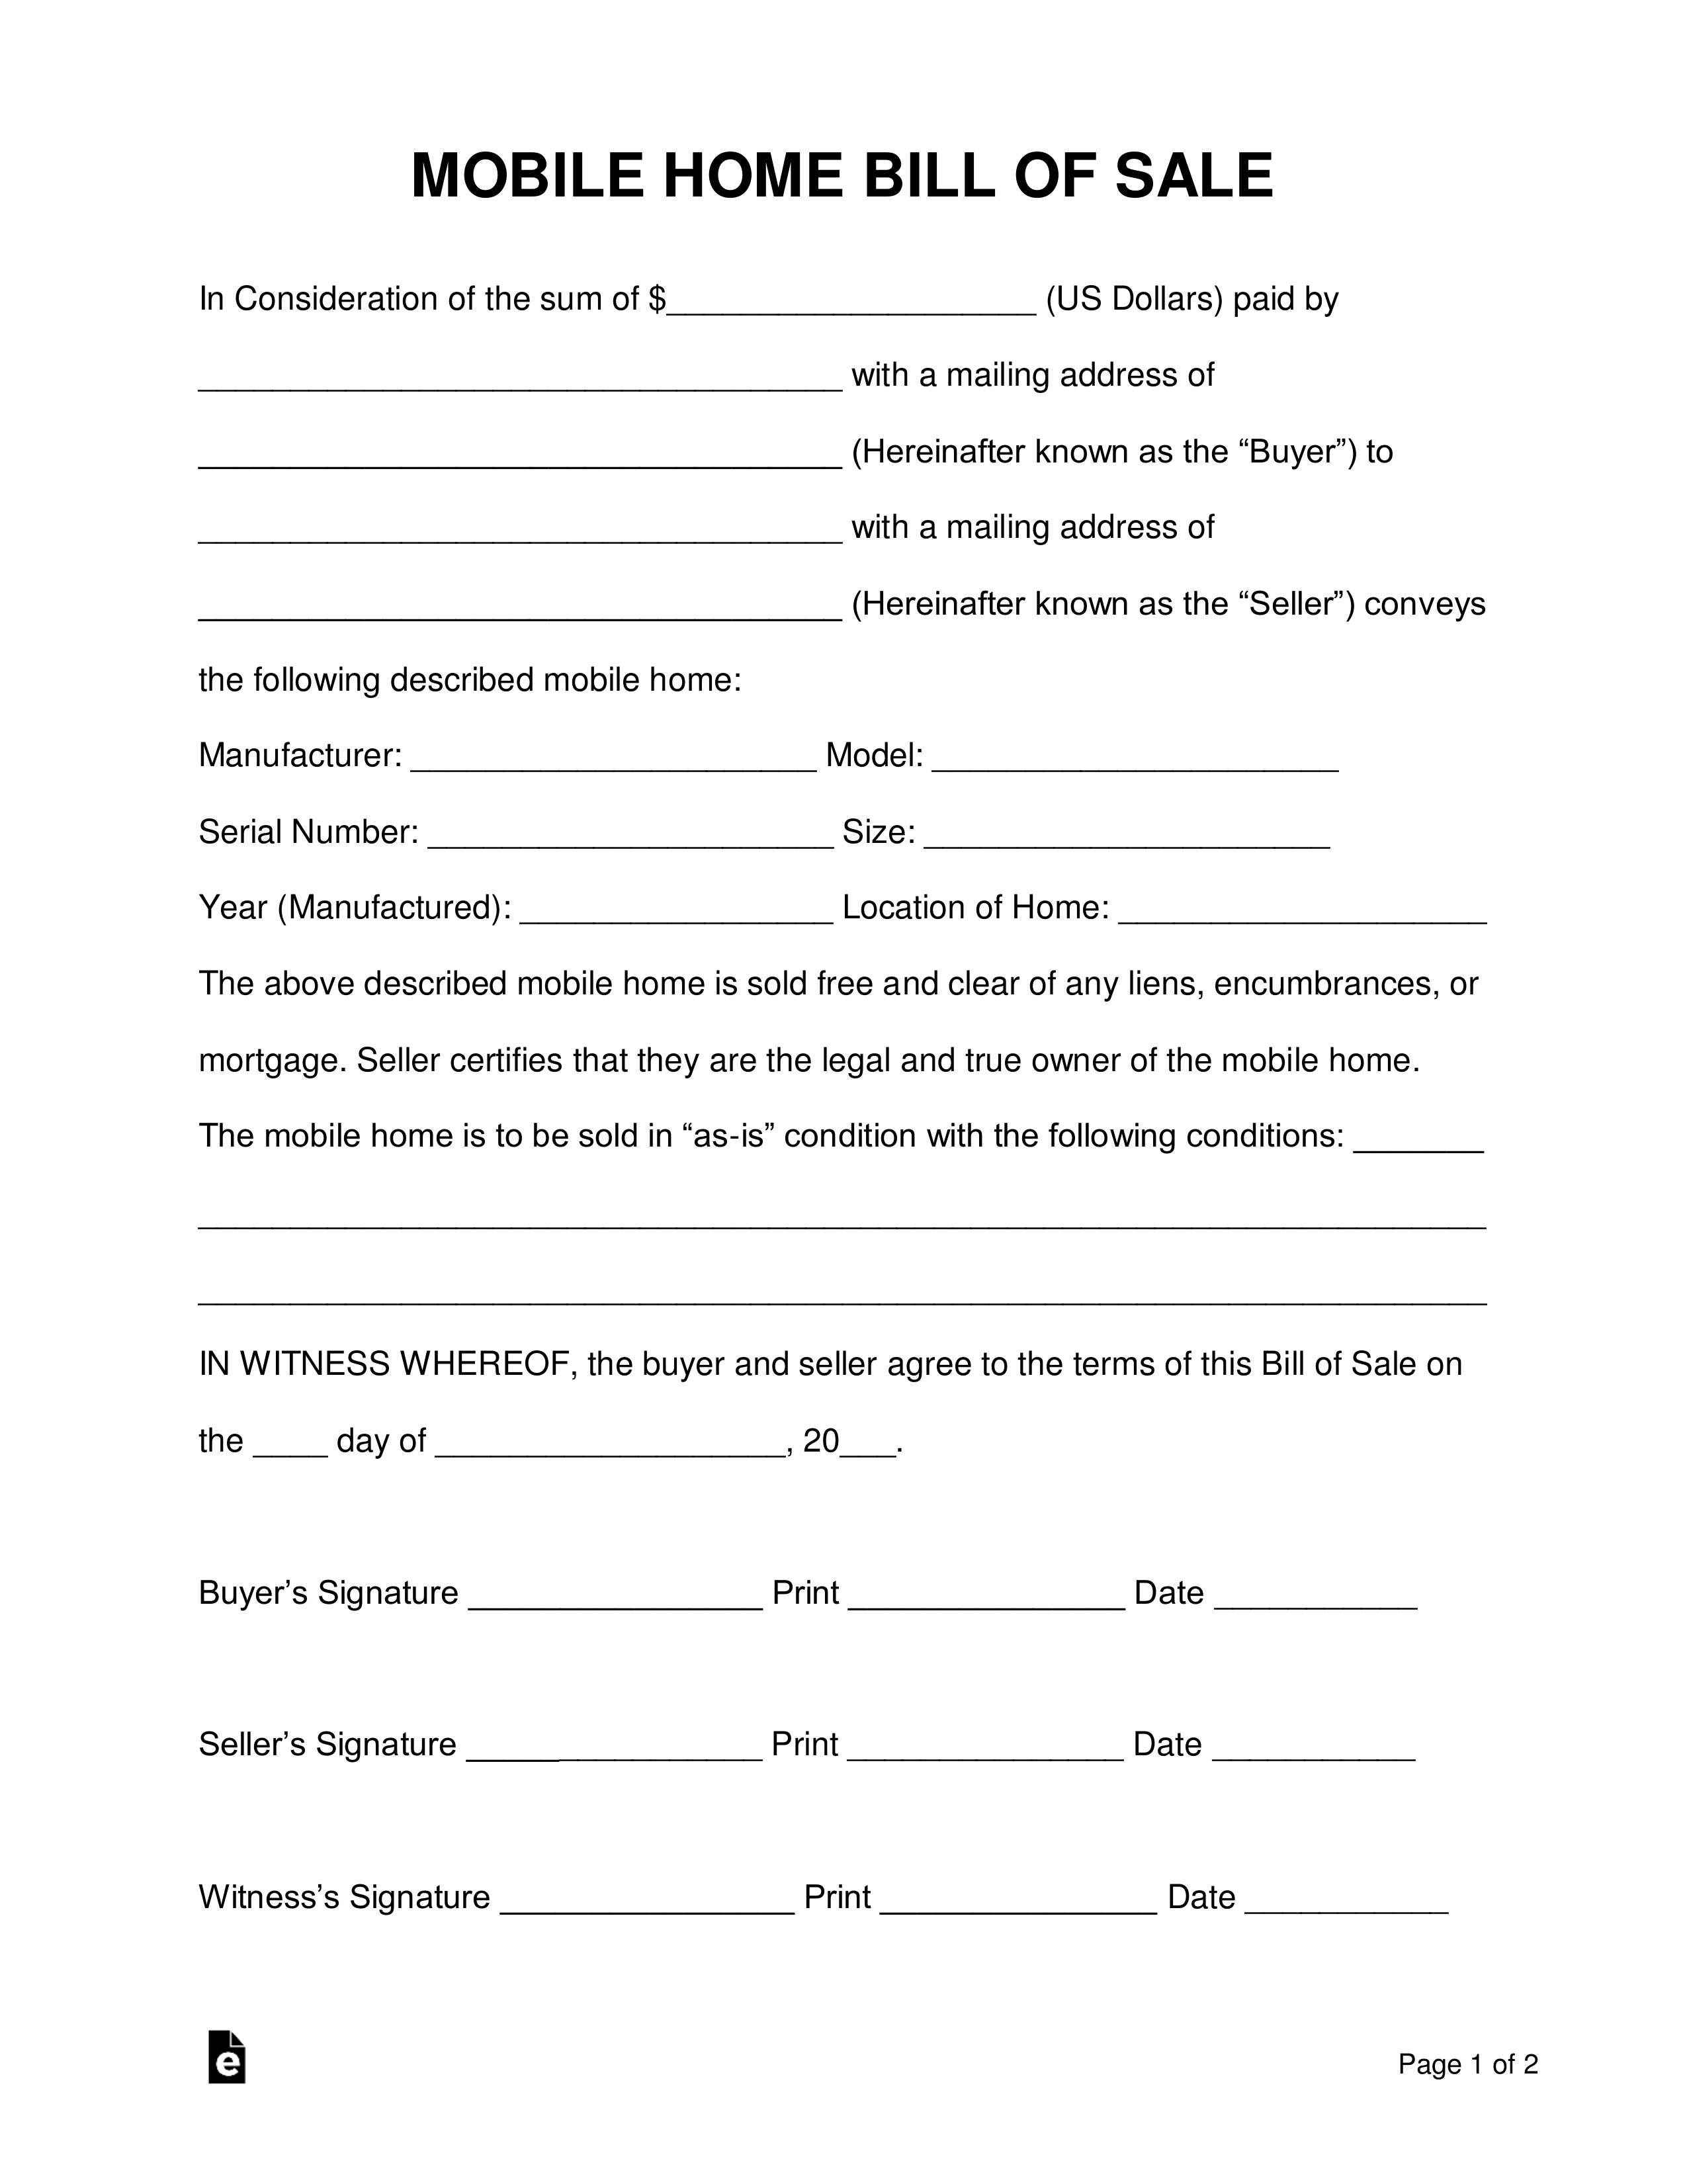 Free Mobile (Manufactured) Home Bill Of Sale Form - Word